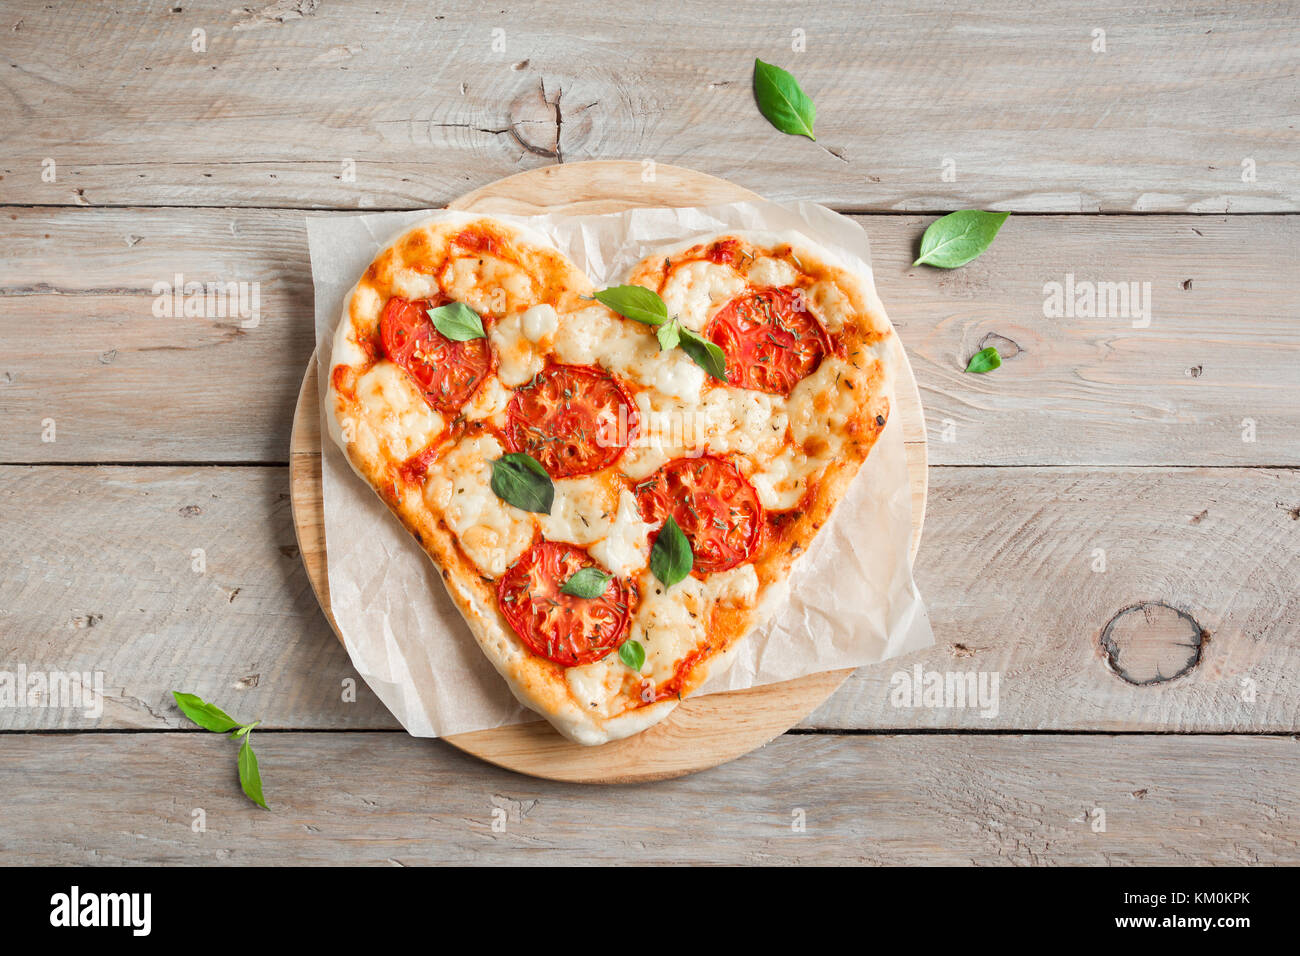 Heart shaped pizza Margherita over wooden background with copy space. Pizza with tomatoes, mozzarella cheese and - Stock Image